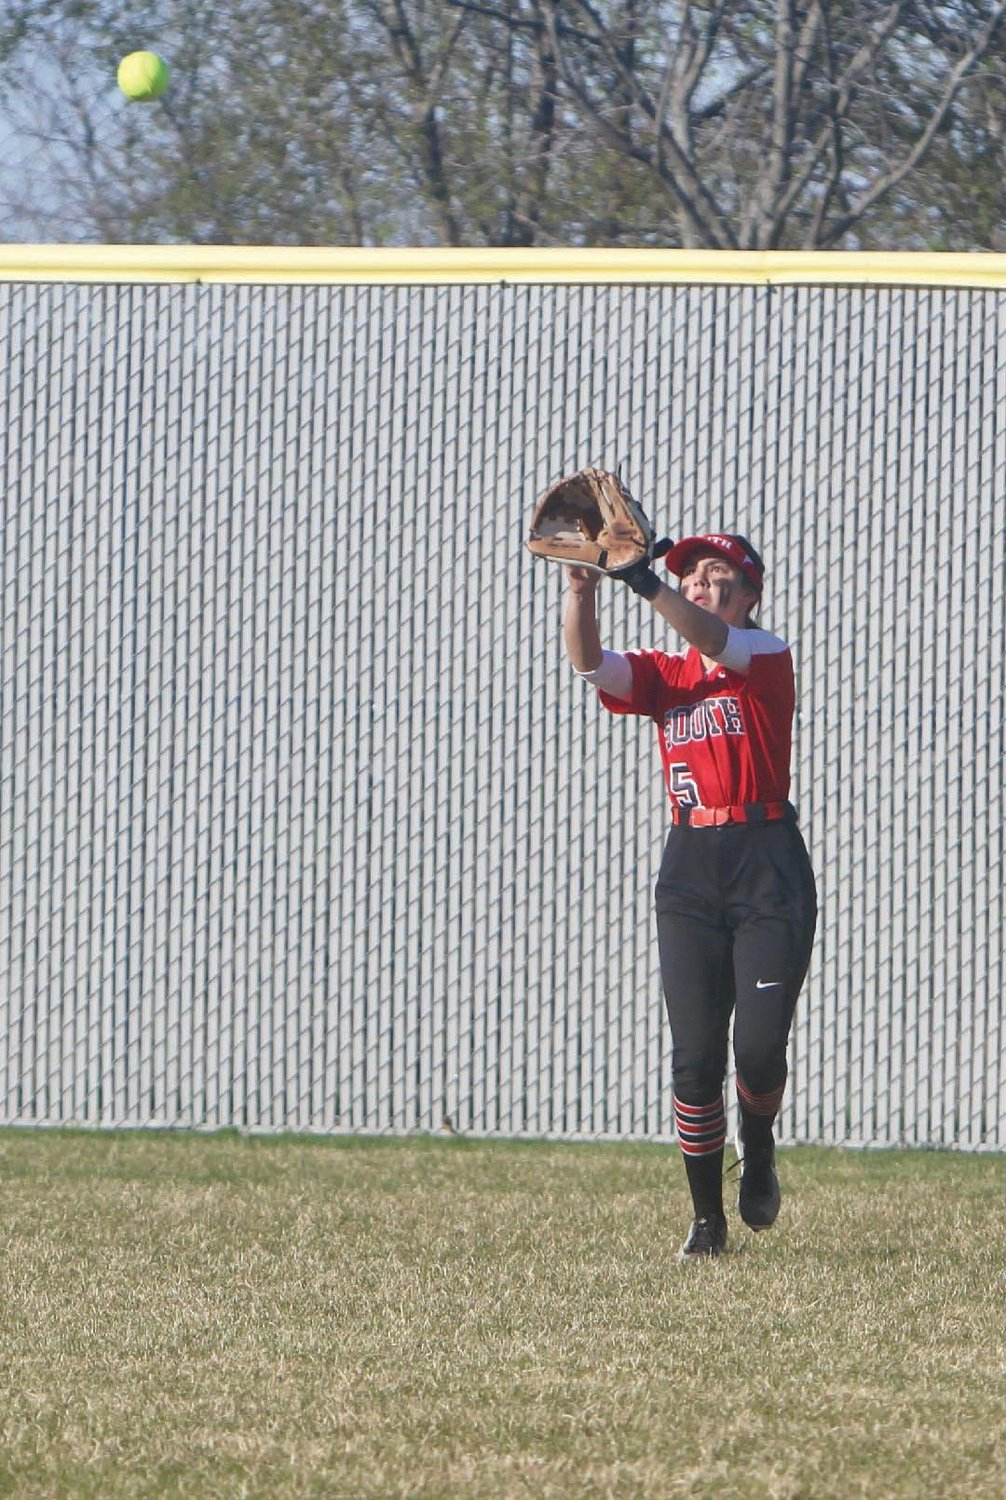 Southmont centerfielder Taylor Grino makes a catch.